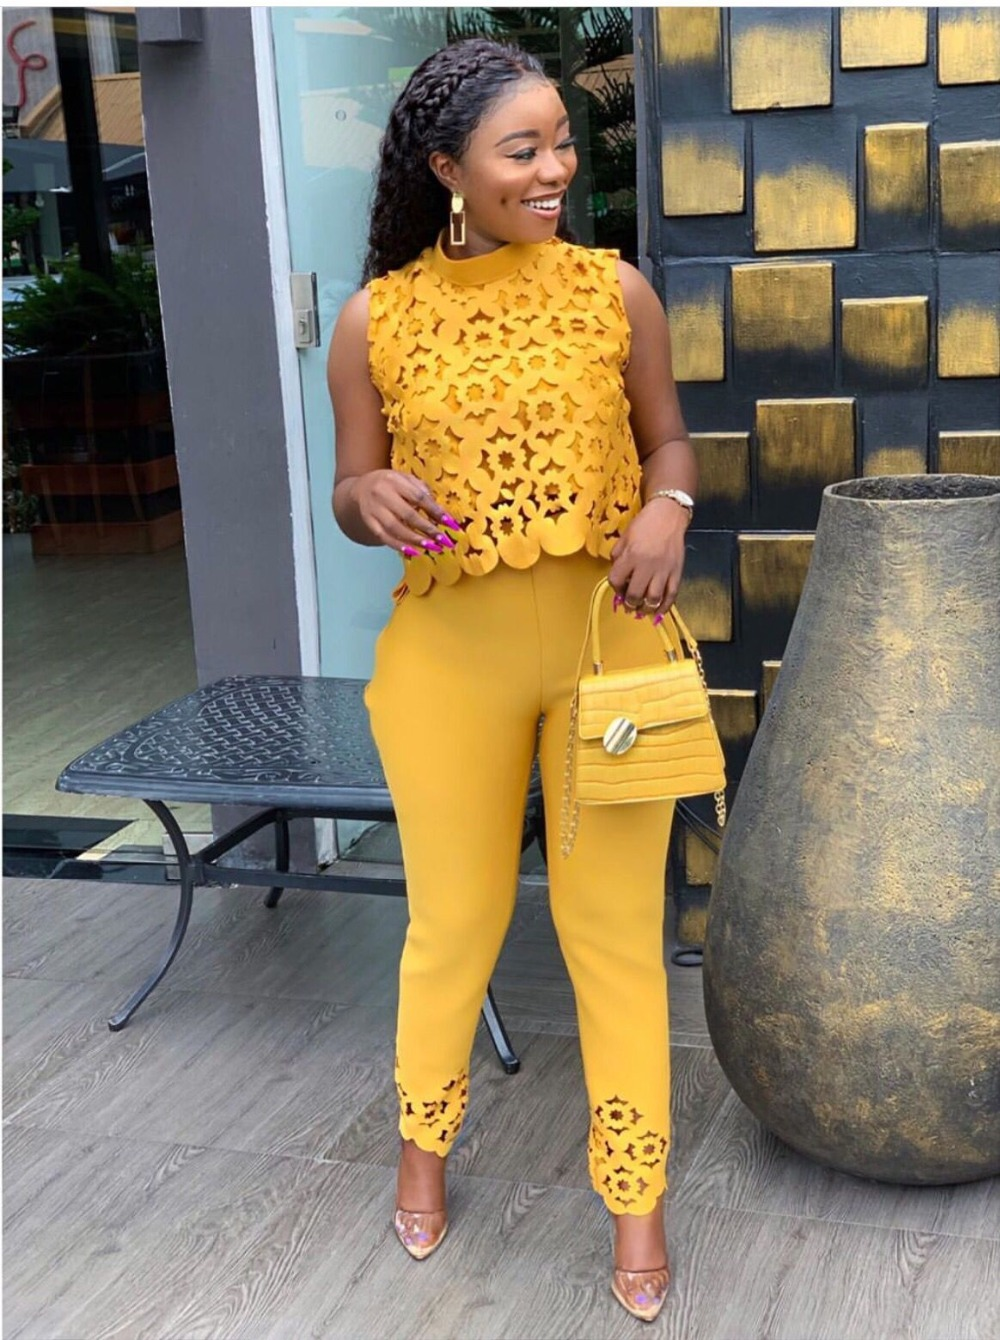 Hbed622c54170476984483d094d67f9cbf - High street yellow hollow out 2 piece set women sleeveless short top and long pants fashion female outfit LTZ008